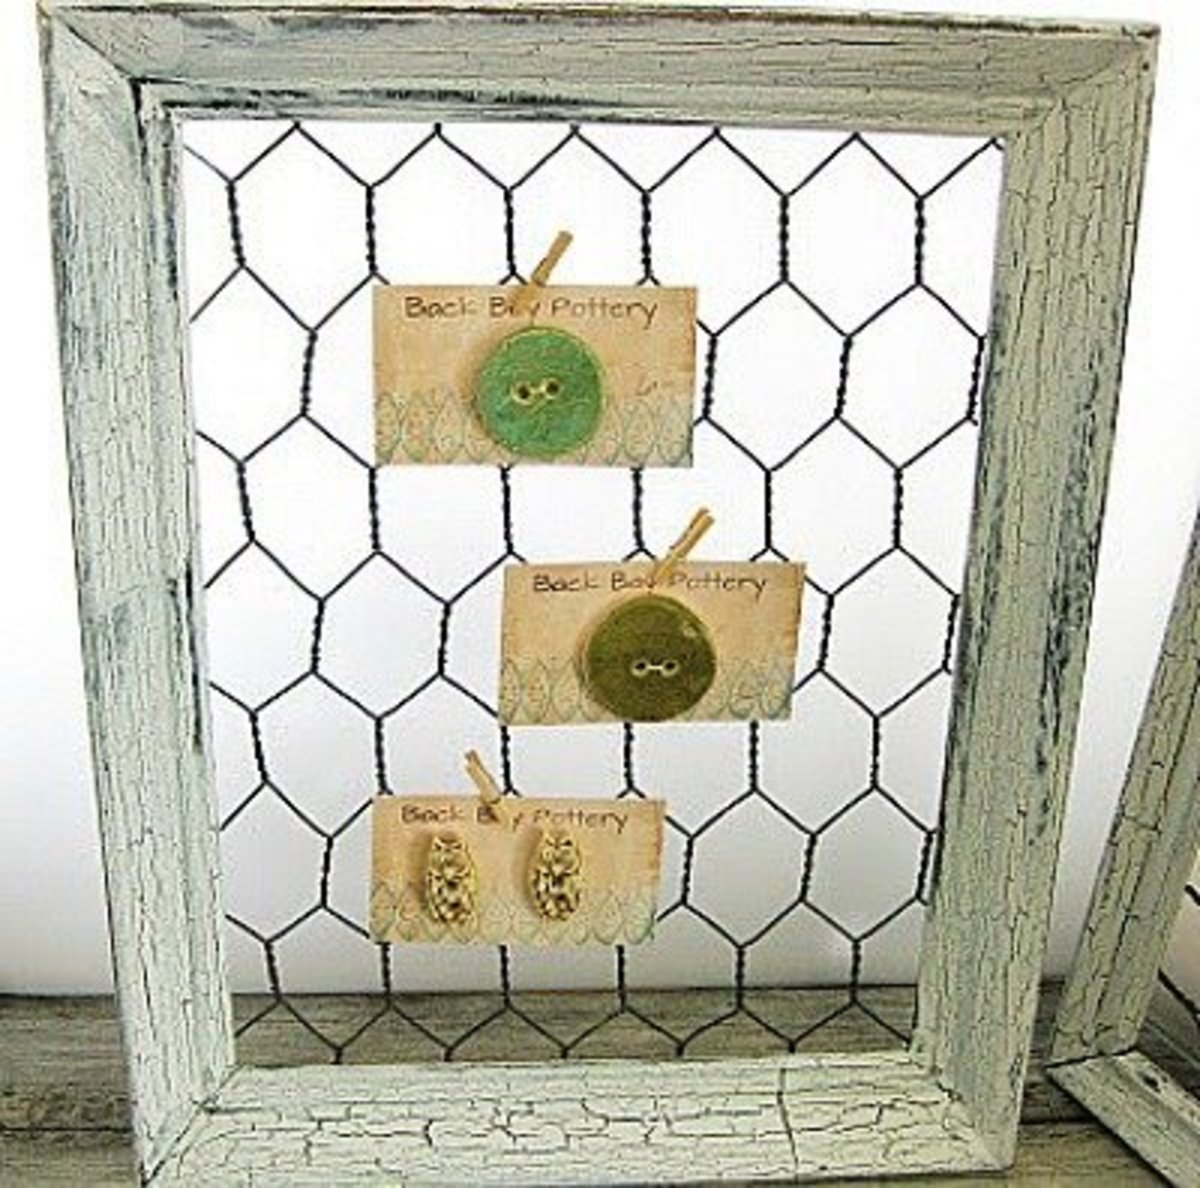 40 Rustic Chicken Wire Craft Ideas | FeltMagnet